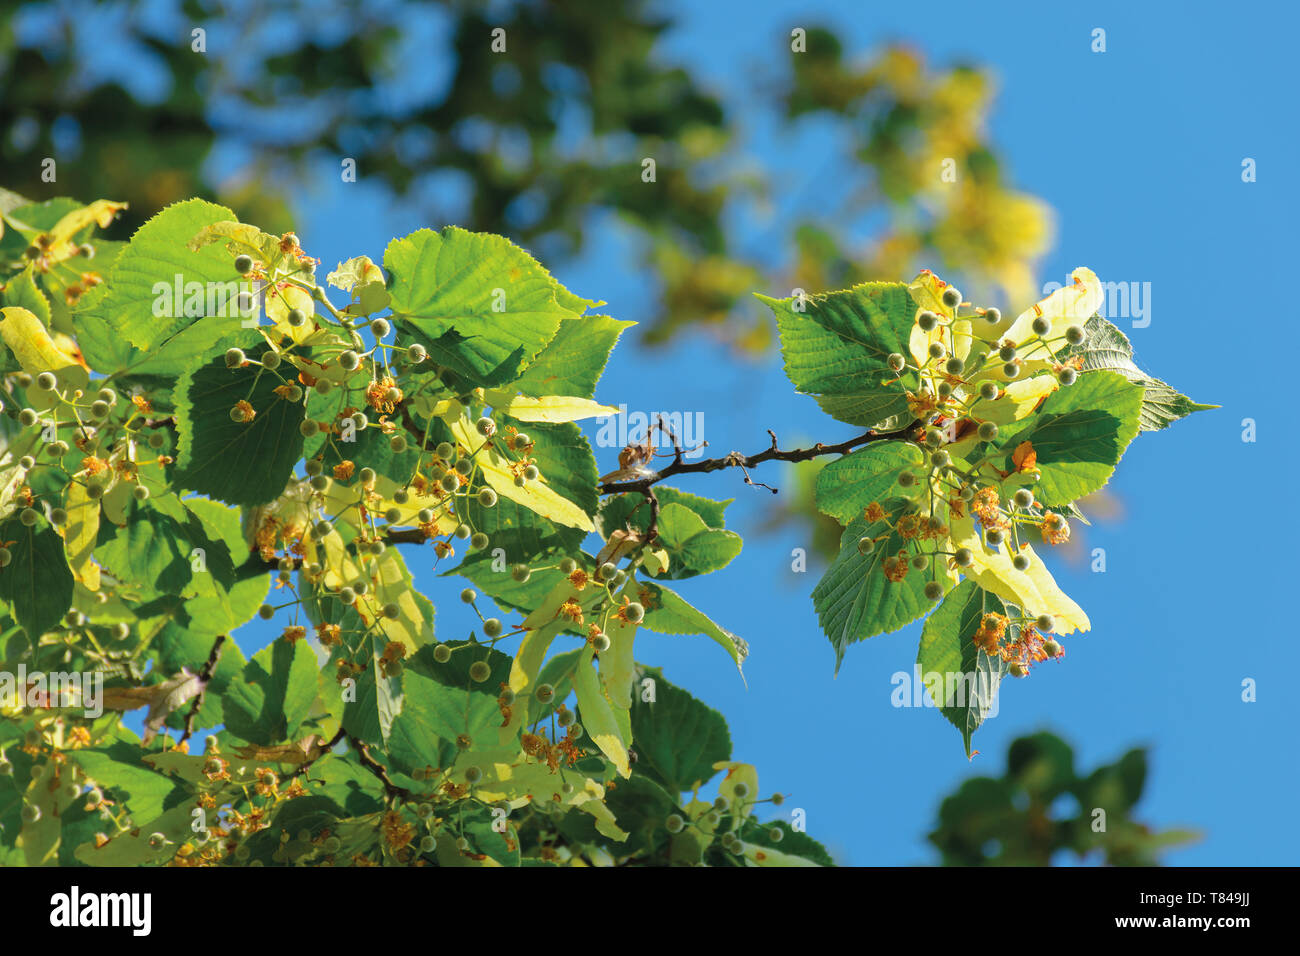 branches of the linden tree. nature scenery in summer. blue sky blurred on the background. green foliage in a sunny day - Stock Image